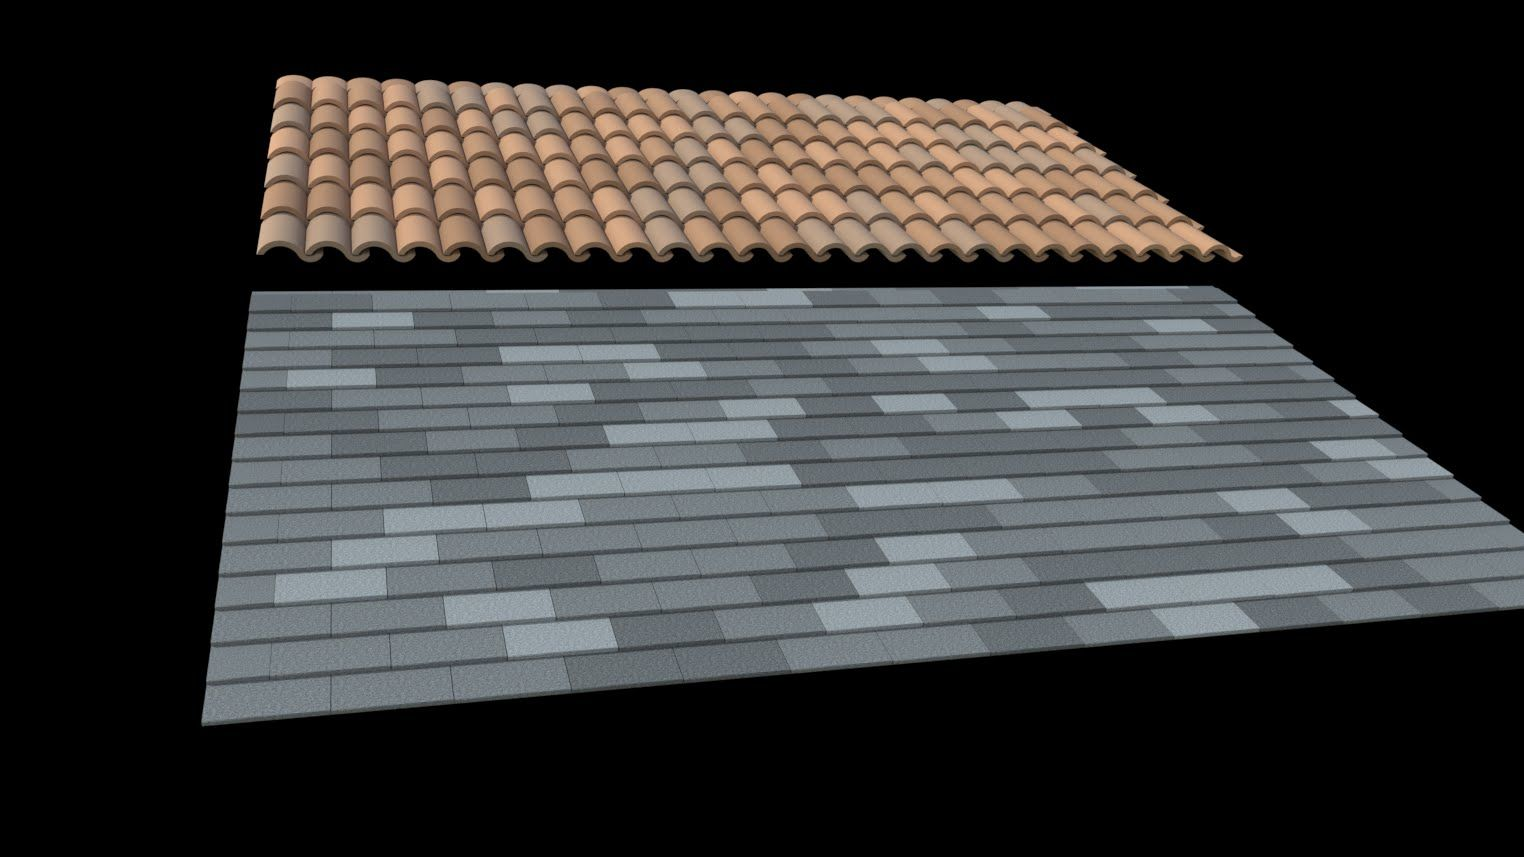 Sketchup Fast 3d Roof Tiles And Shingles Roof Tiles Shingling Roof